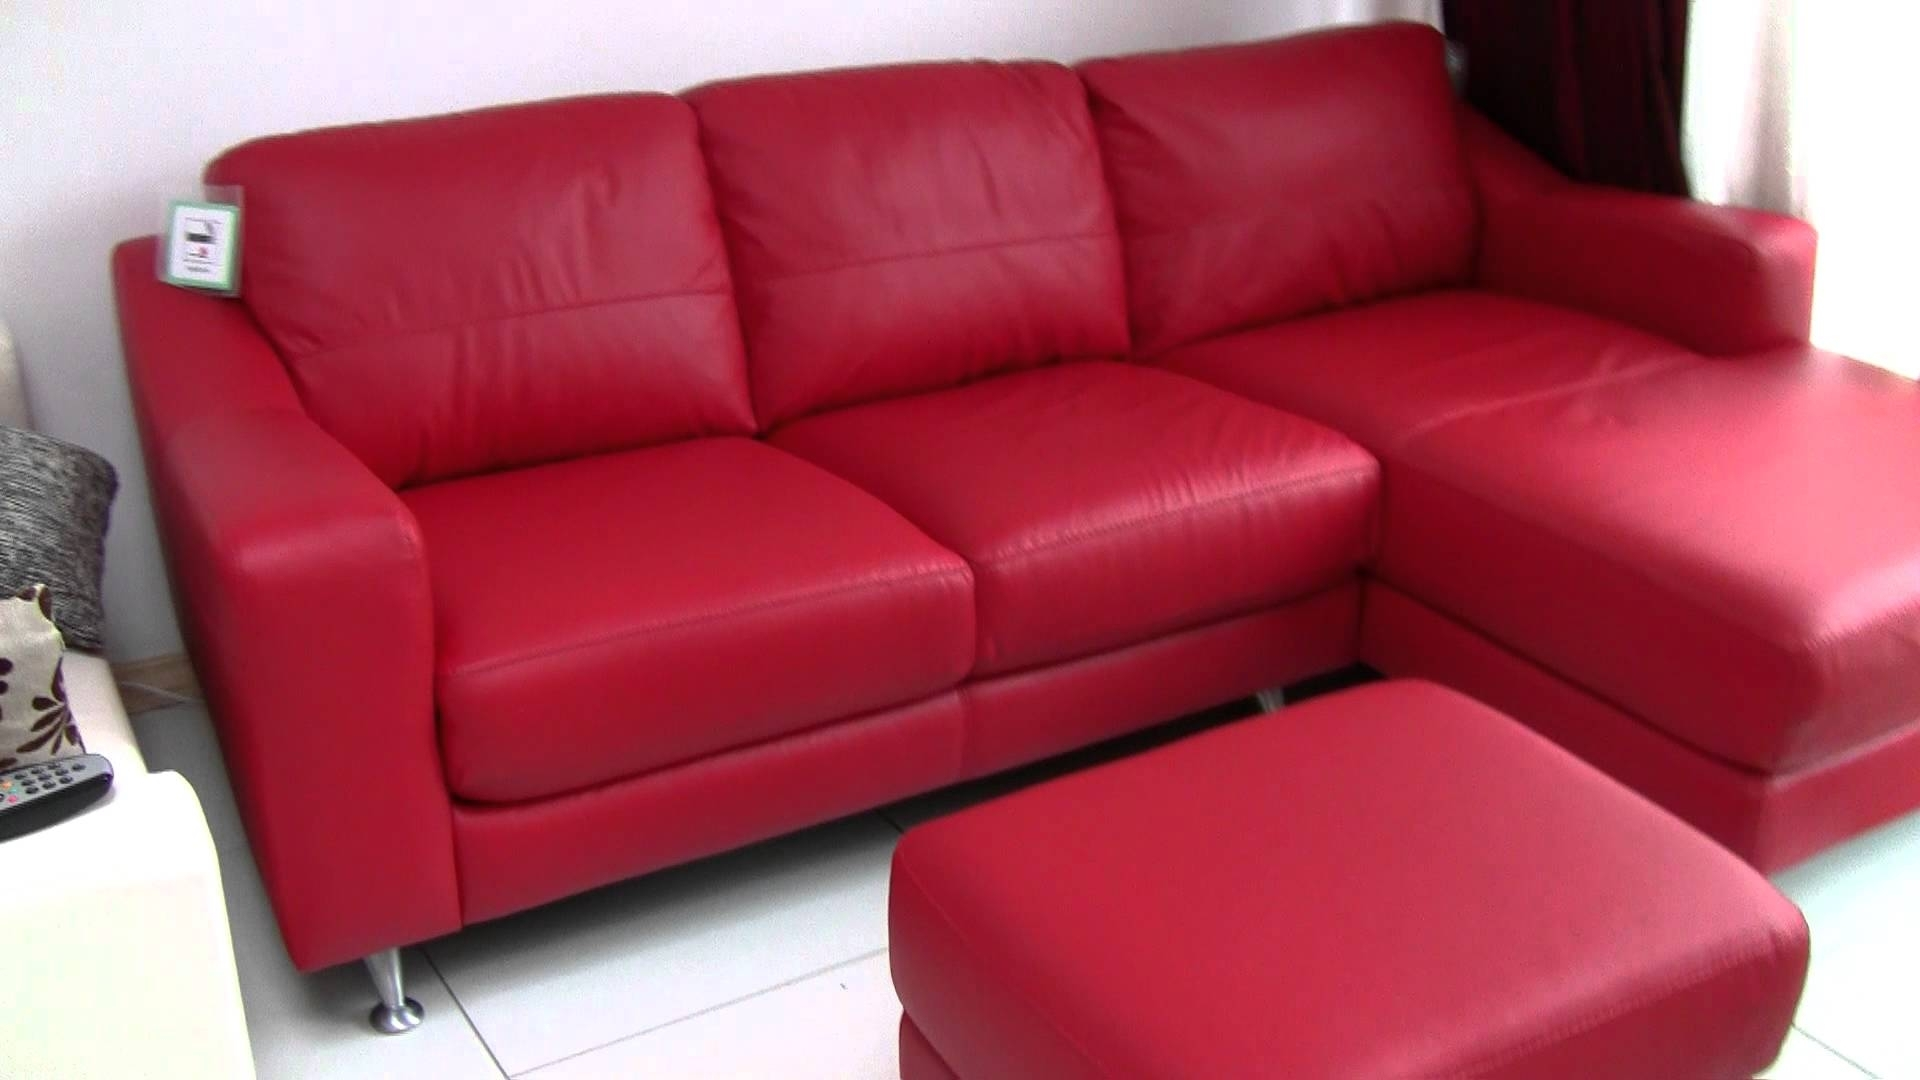 Fascinating Dfs Leather Corner Sofa For Pic Of Red Inspiration And intended for Red Leather Couches (Image 4 of 15)